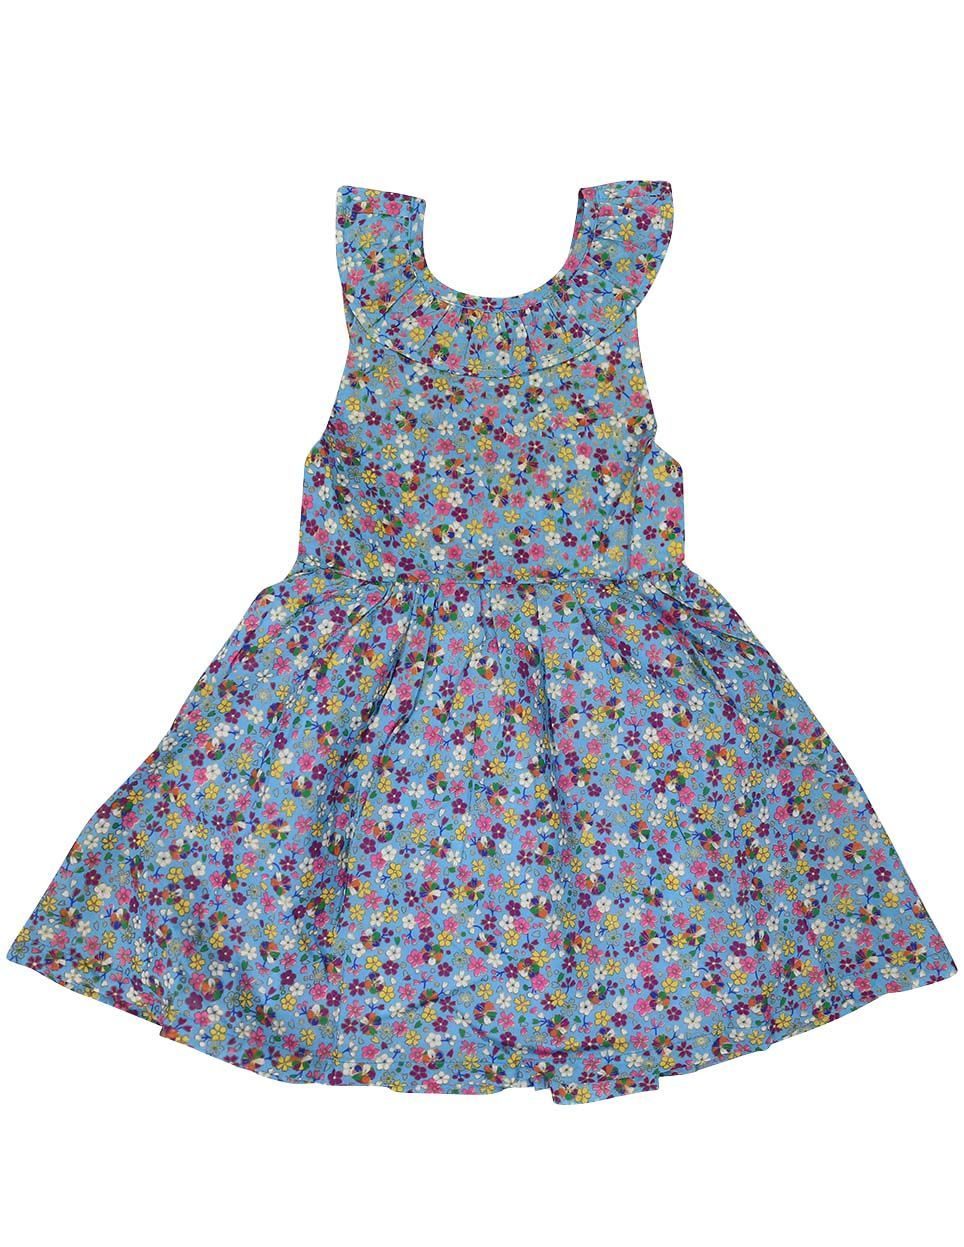 KORANGO Floral Dress in Blue